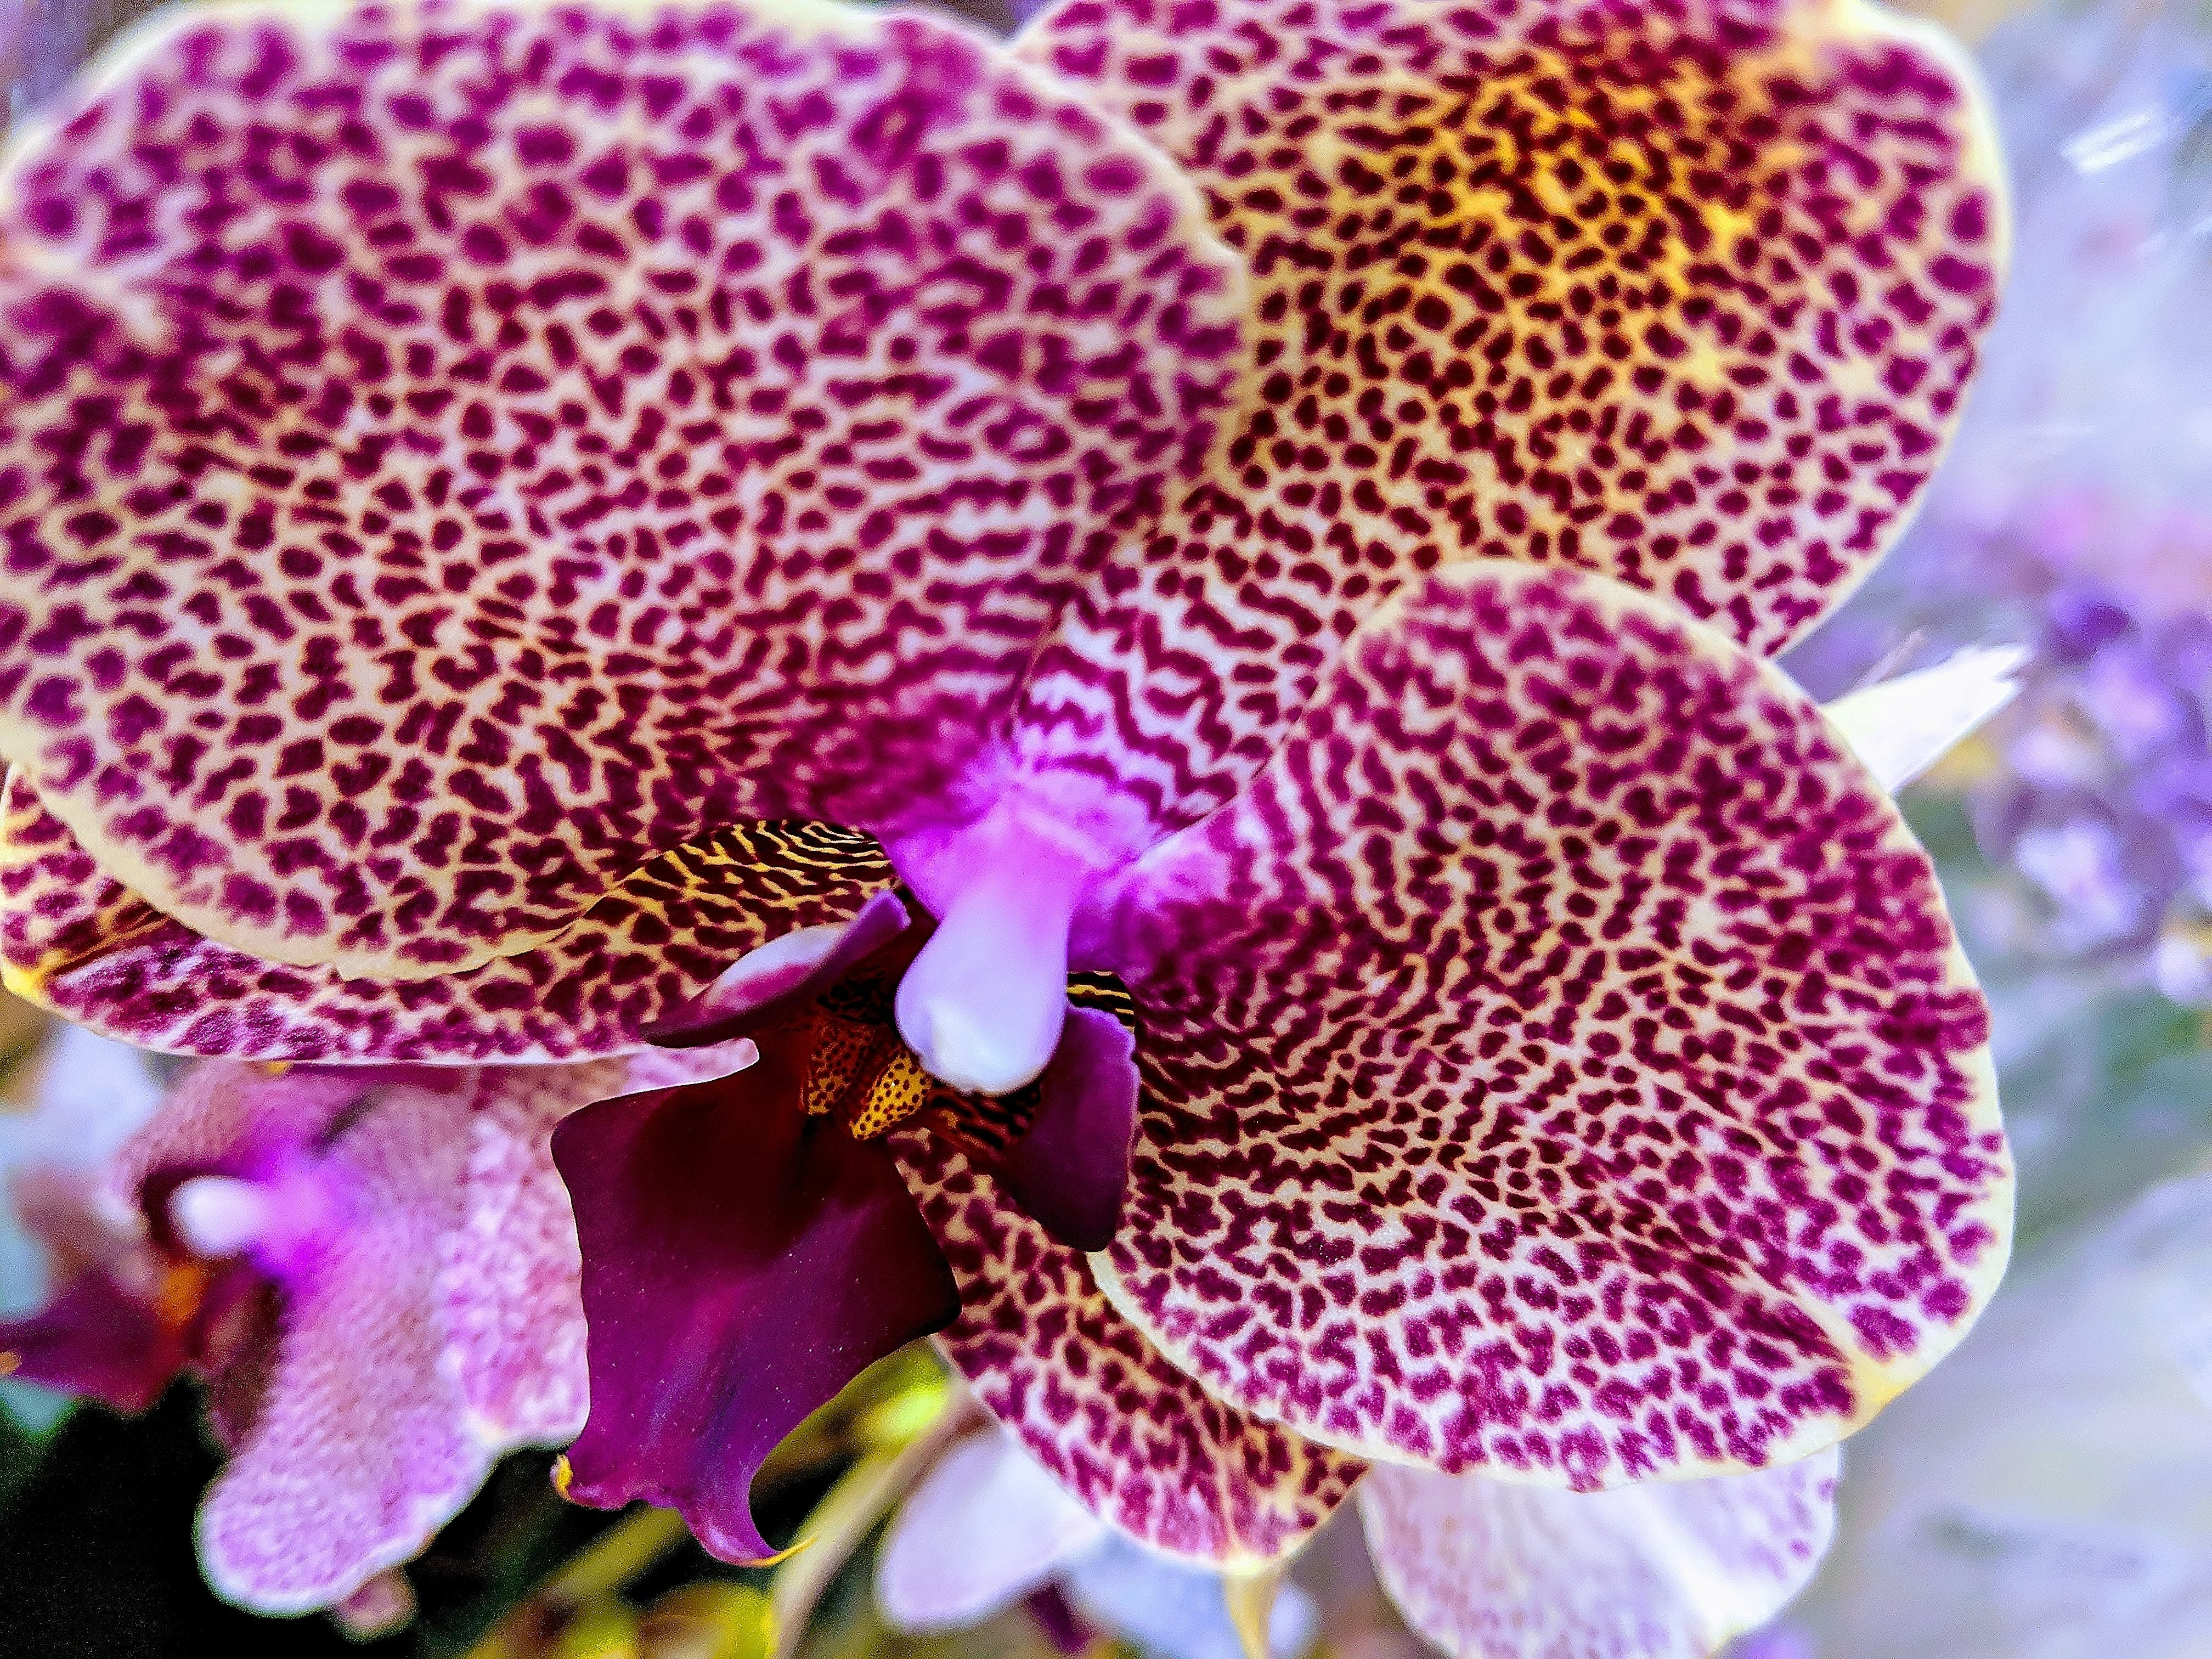 Free stock photo of orchid, orchids, purple orchid, purple orchids